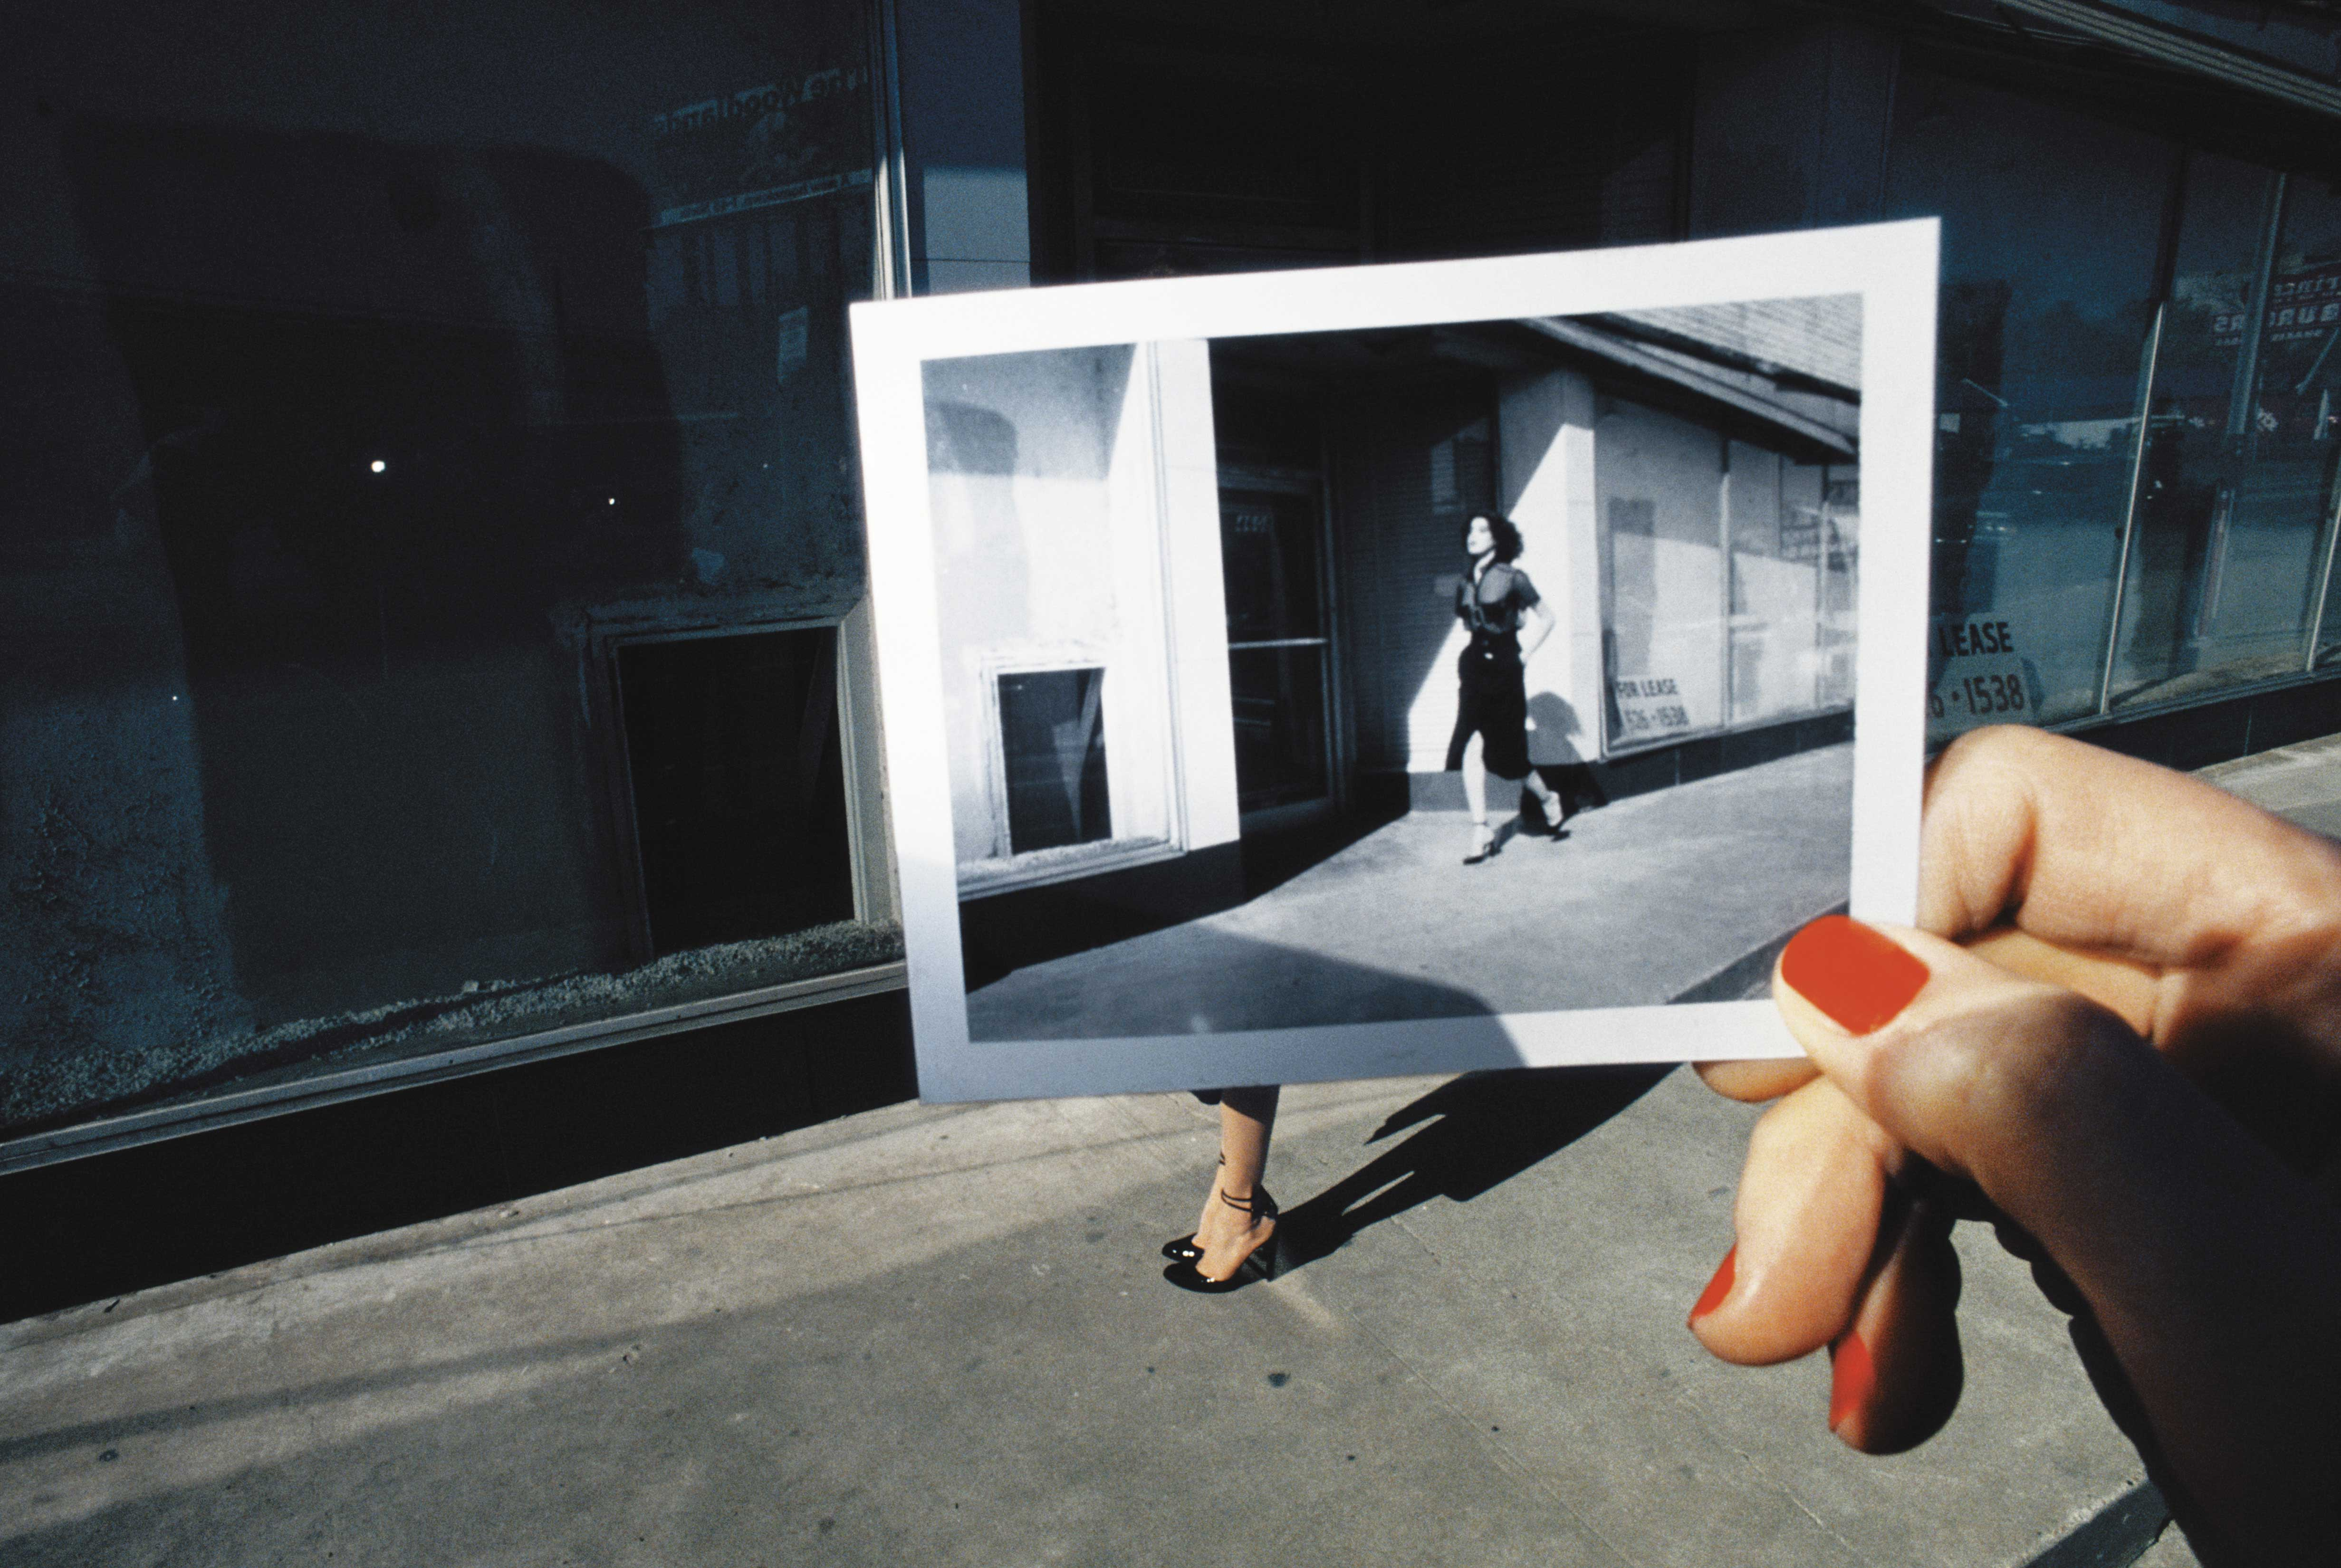 guy-bourdin-a-message-for-you